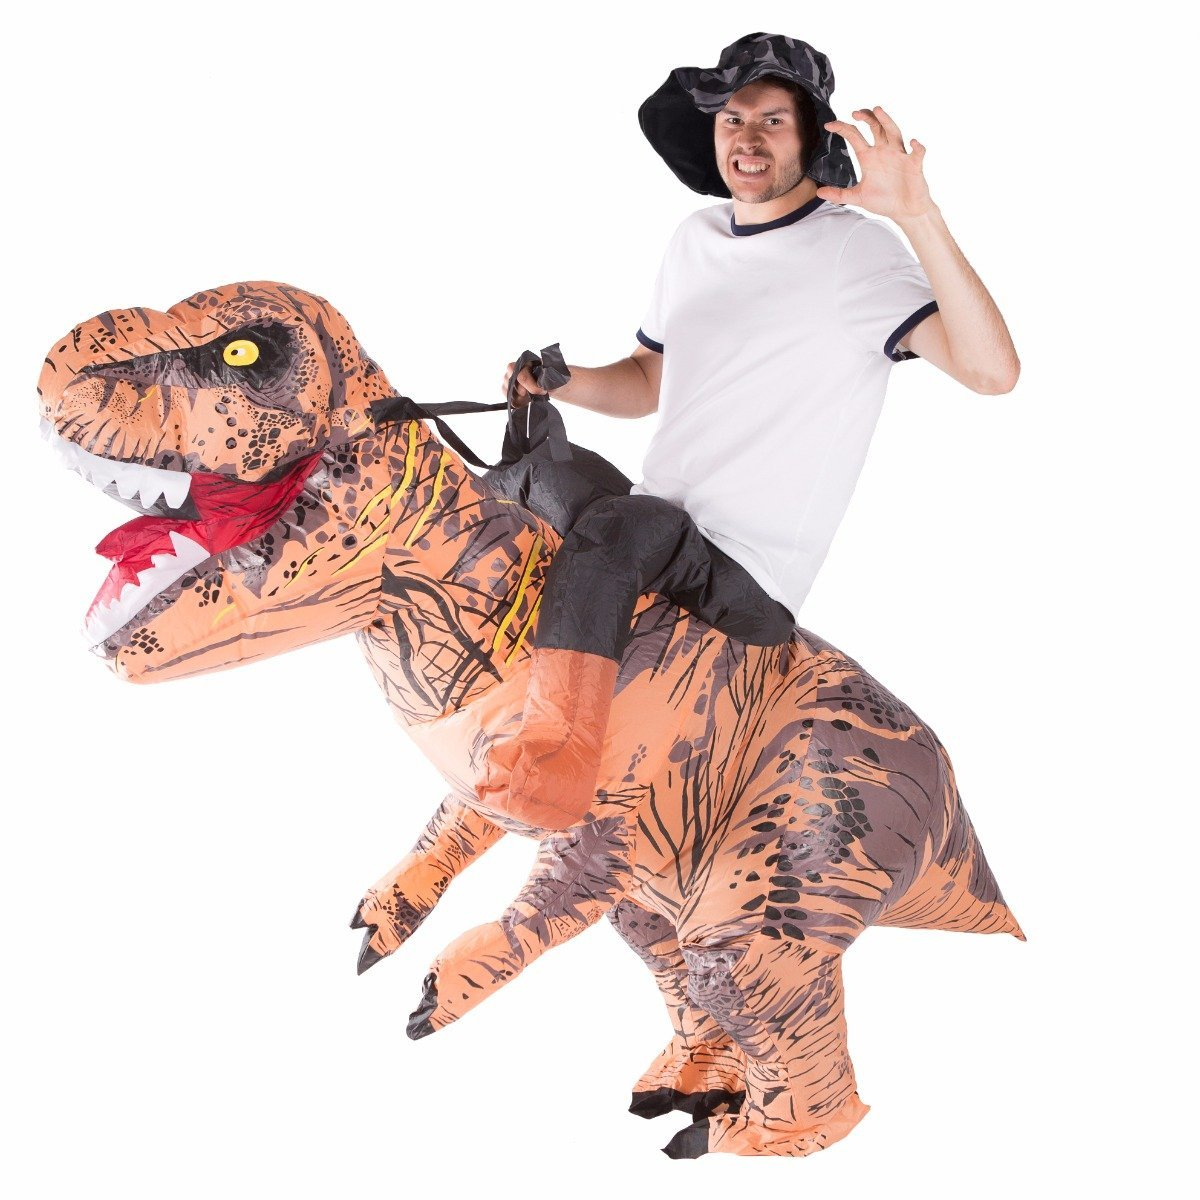 Bodysocks - Inflatable Lift You Up Deluxe Dinosaur Costume